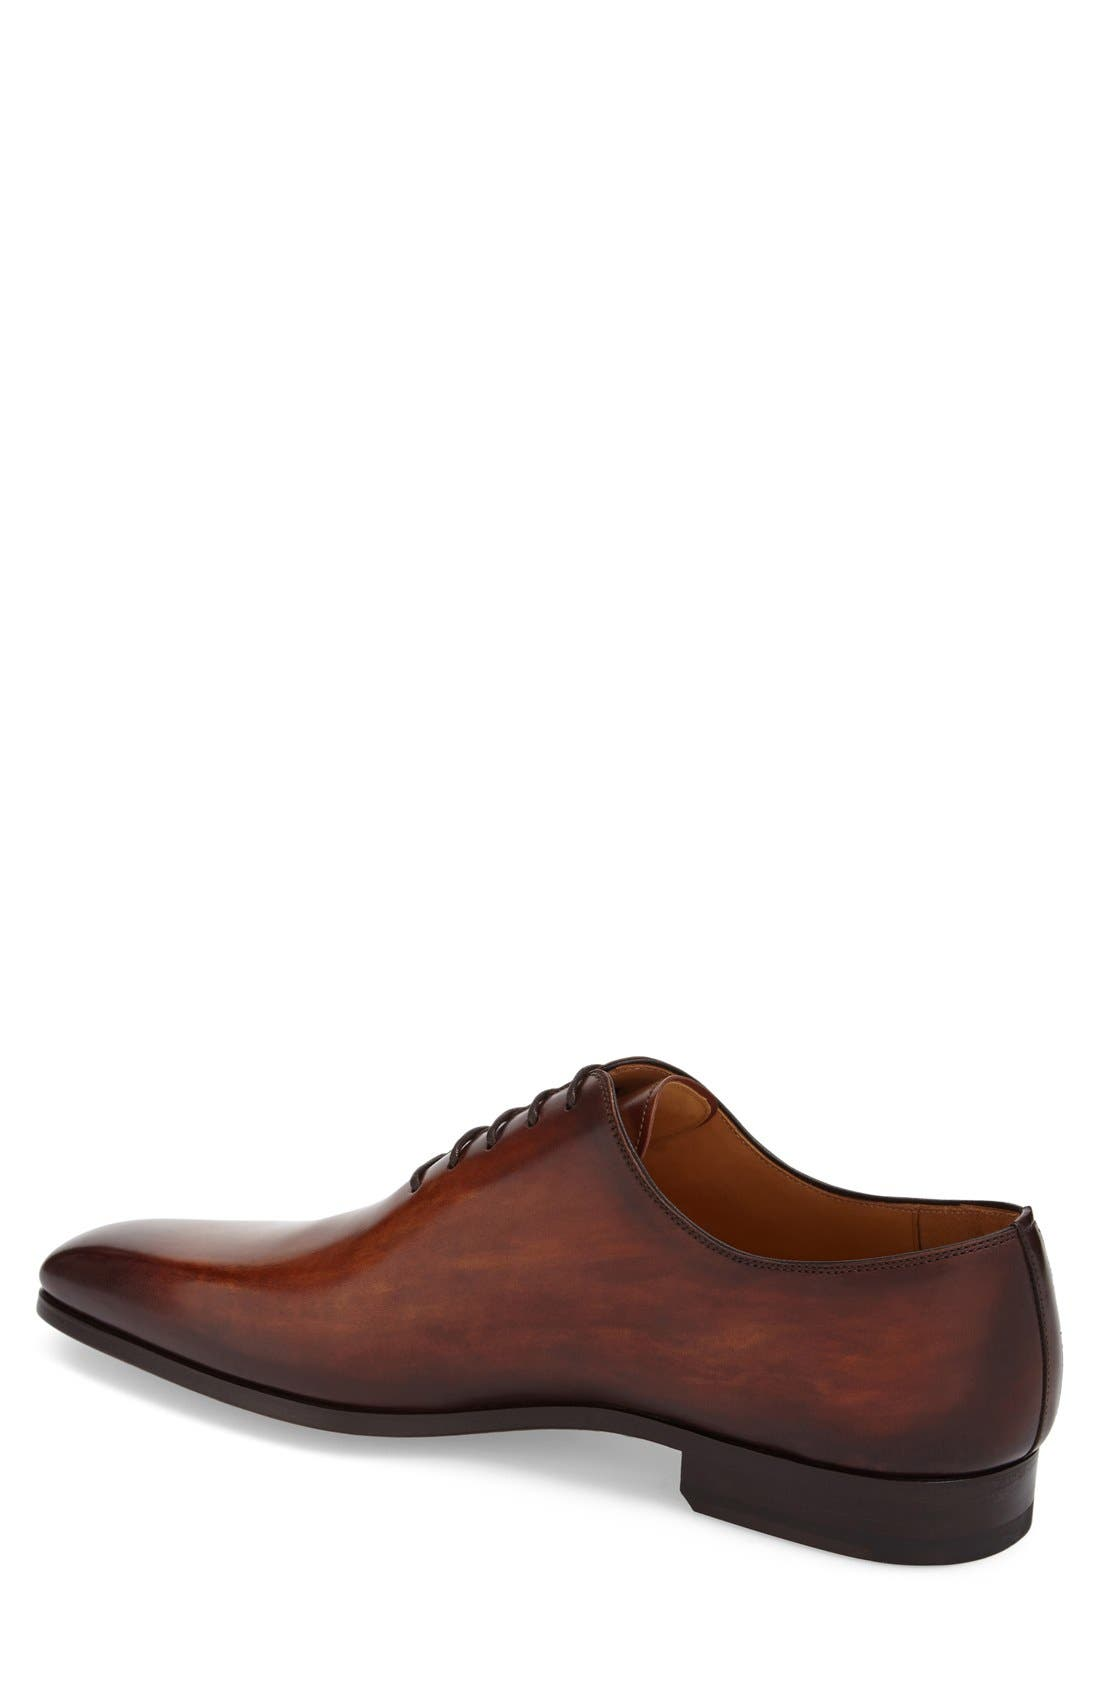 'Cruz' Plain Toe Oxford,                             Alternate thumbnail 2, color,                             Cognac Leather